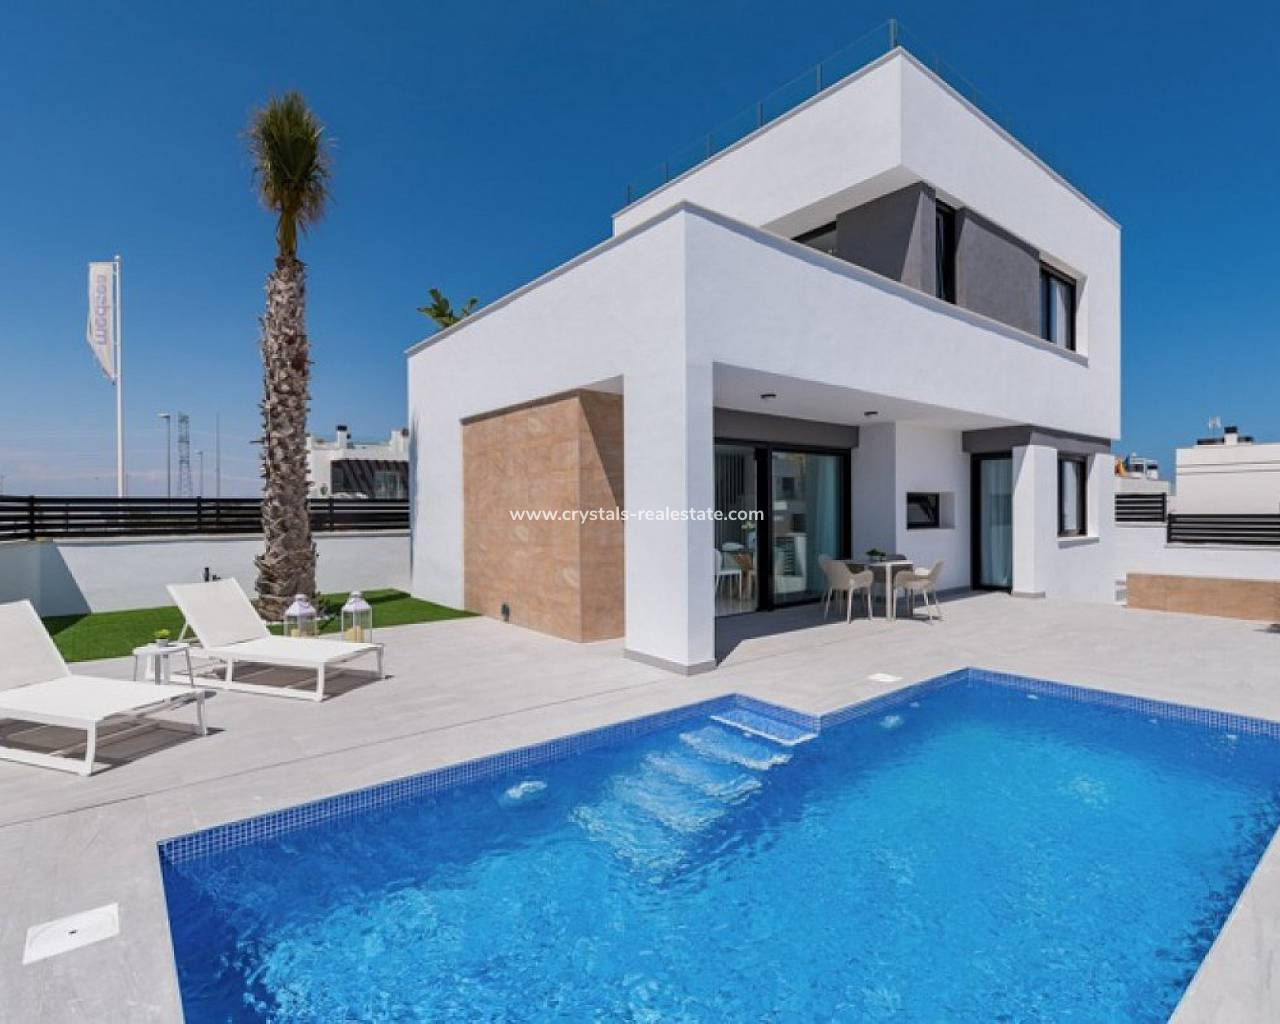 Detached Villa - Resale - Orihuela Costa - Orihuela Costa